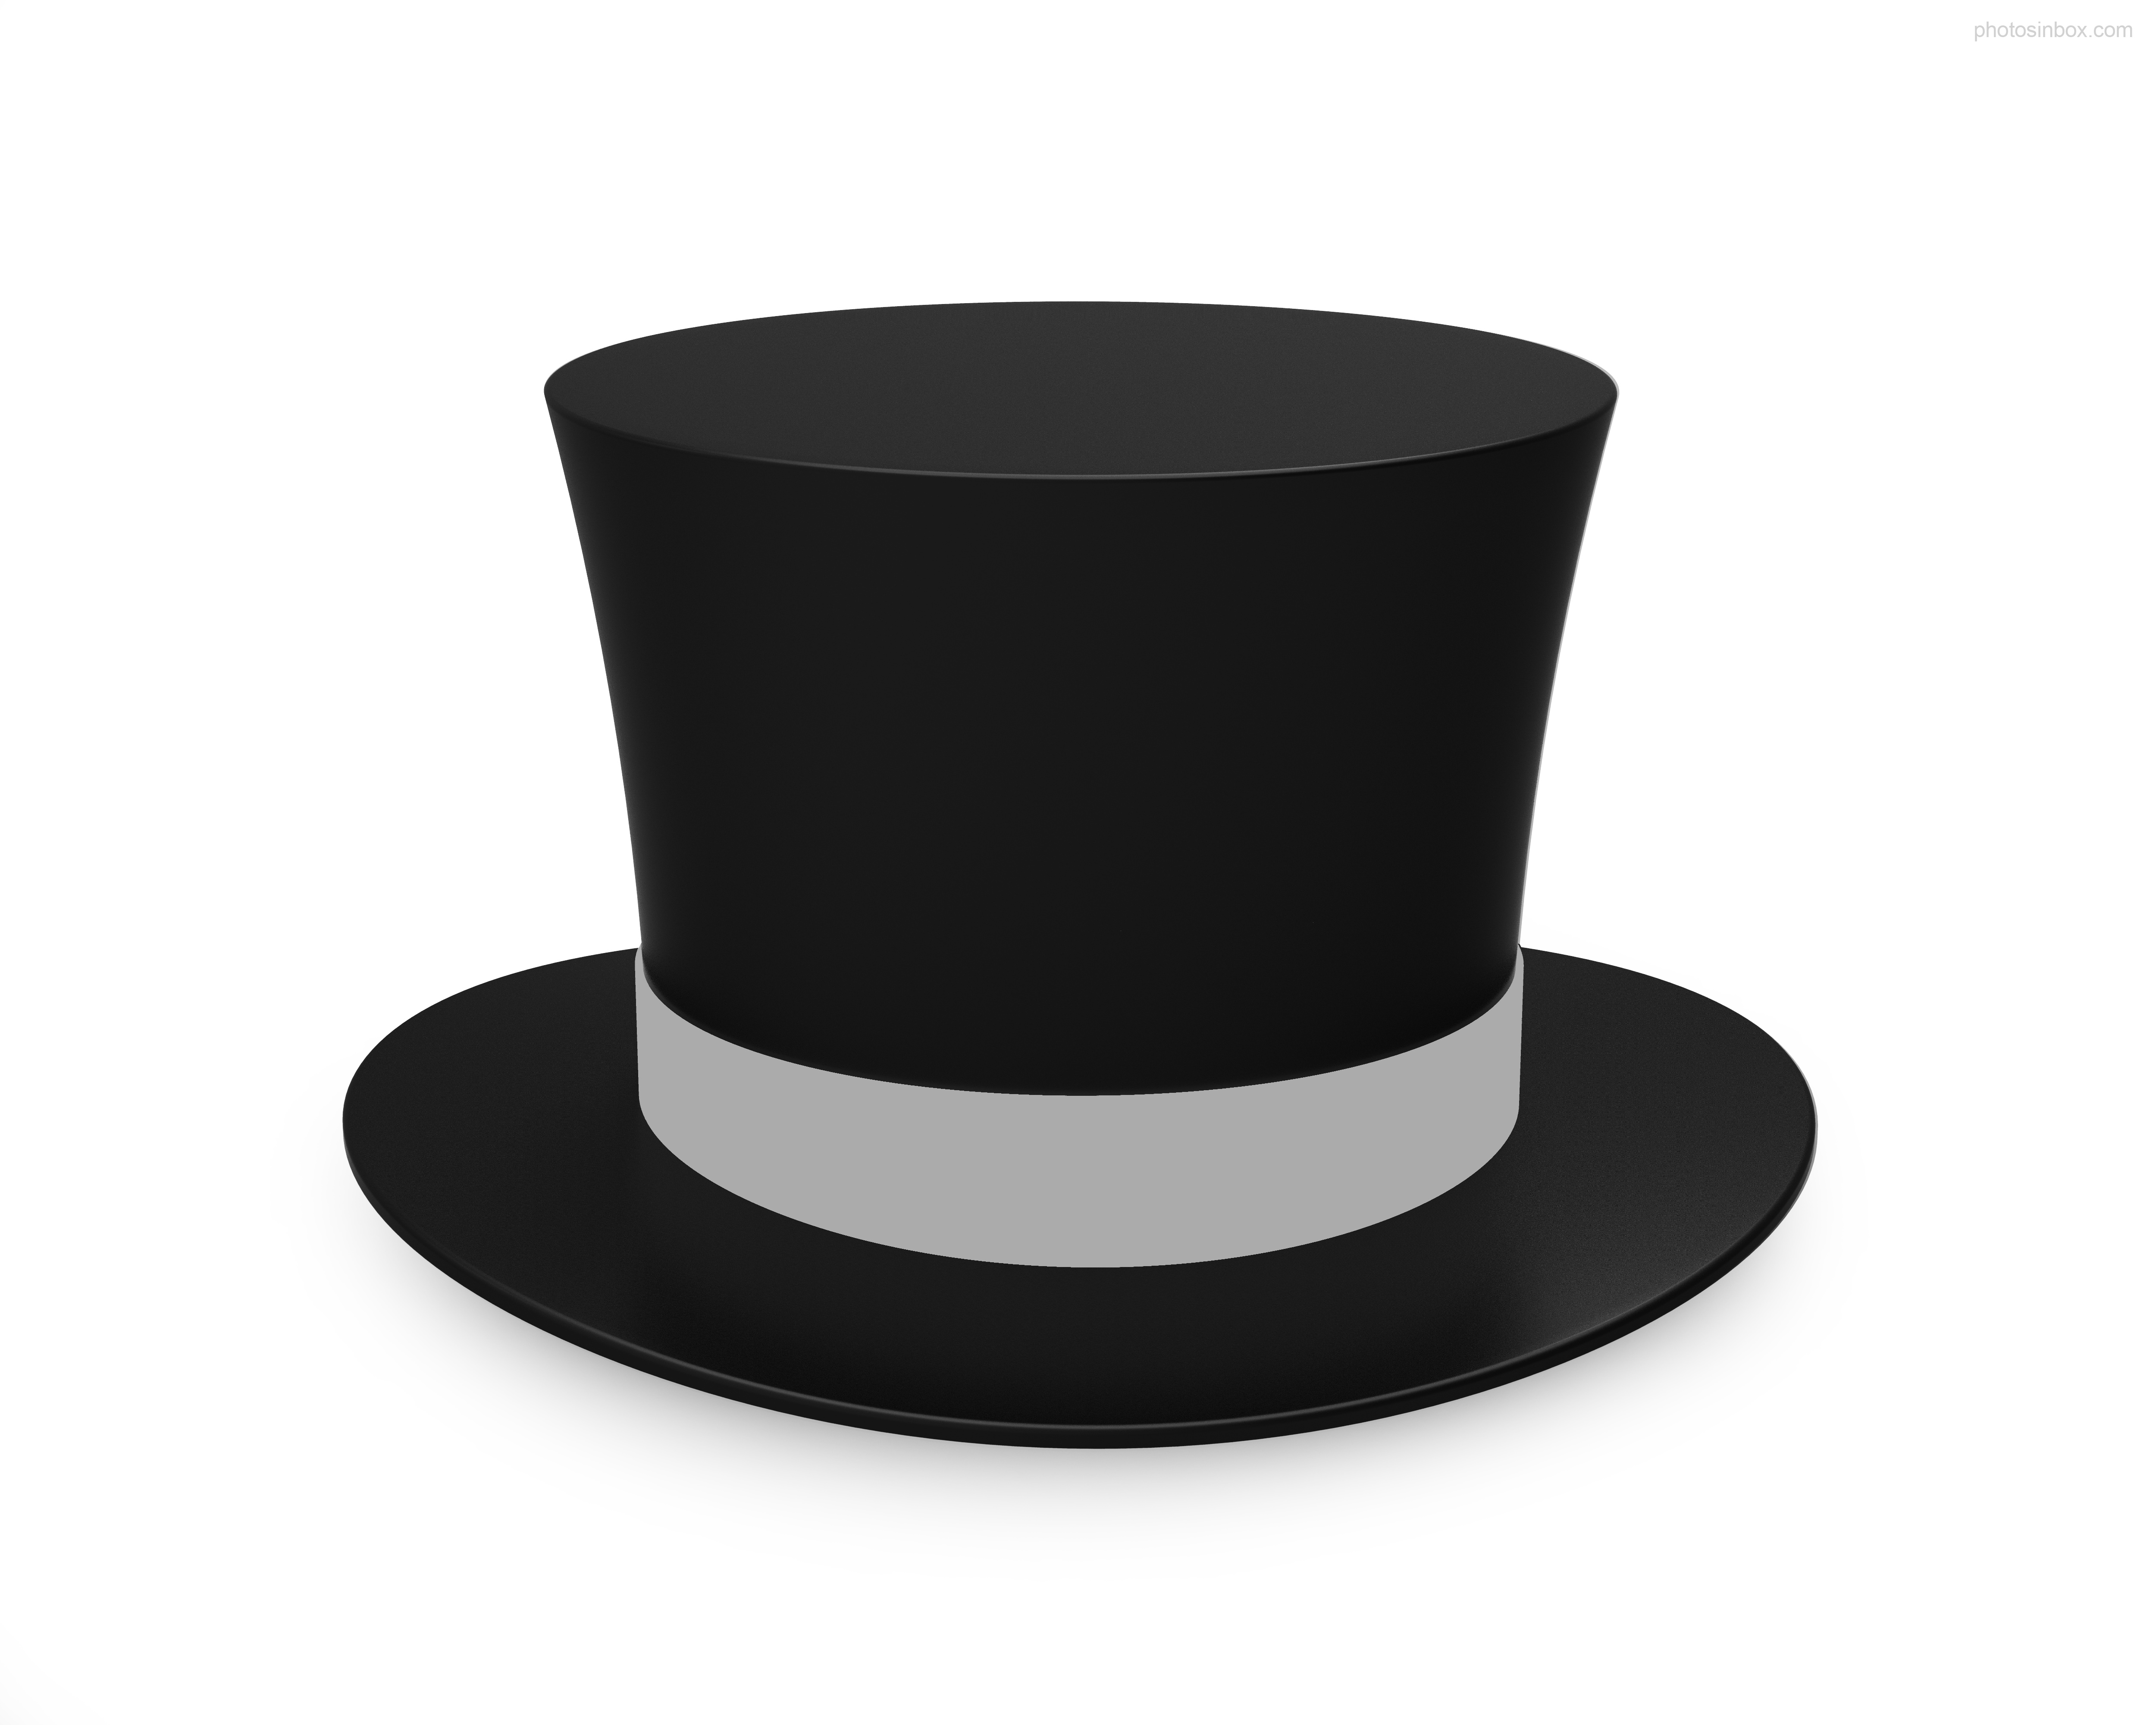 Top Hat Photosinbox